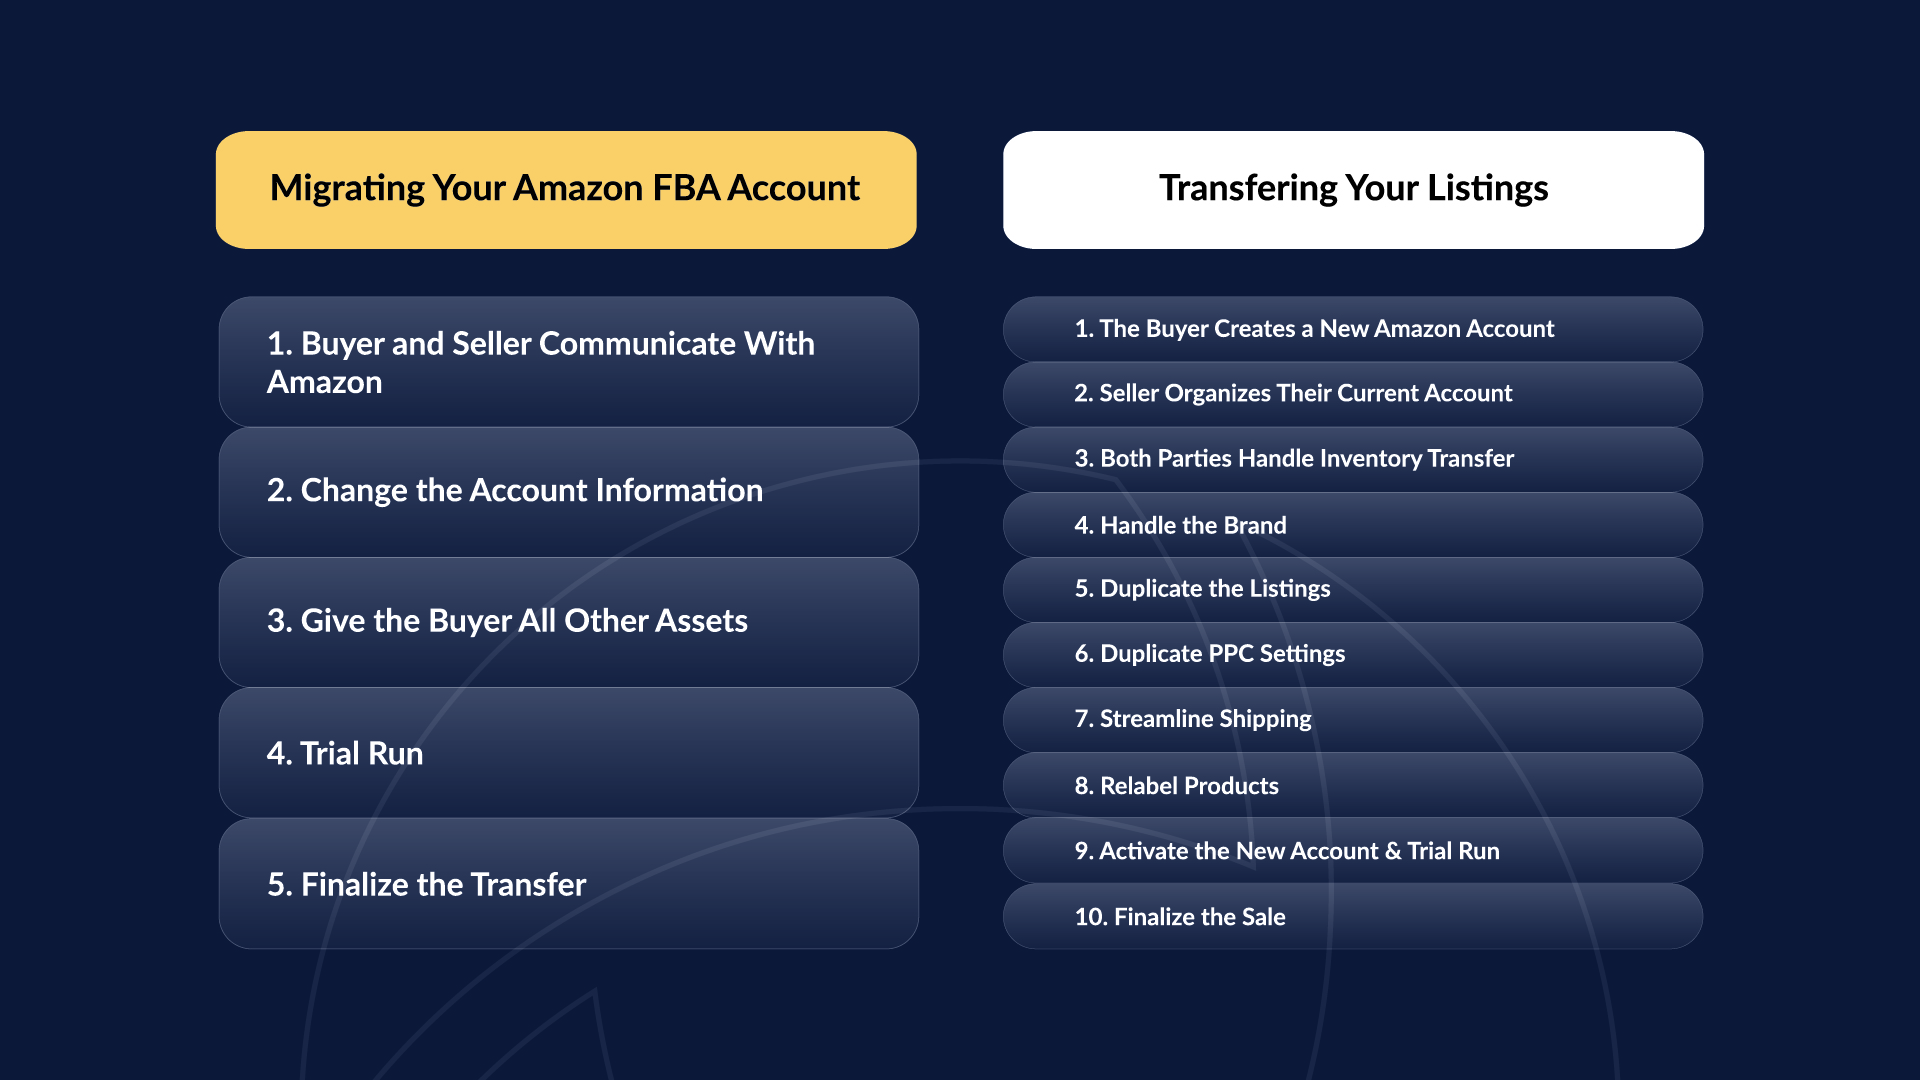 Side by side comparison of the steps necessary for both FBA Account Migration and Listing Transfers.